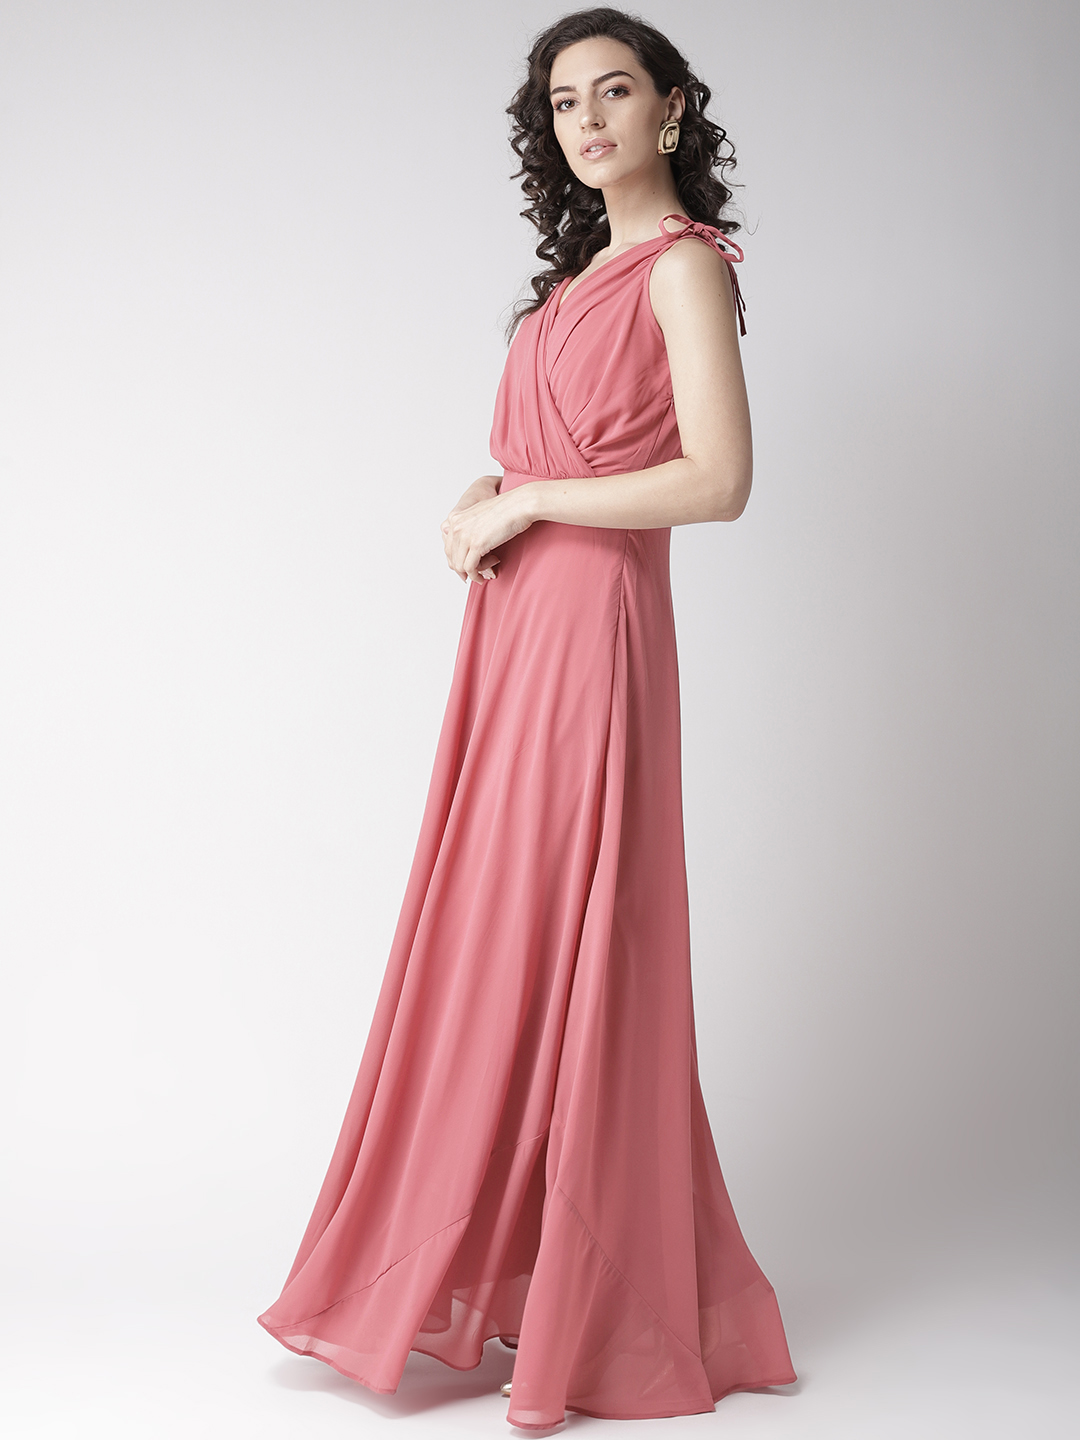 Dresses-Ready For The Royals Pink Maxi Dress4